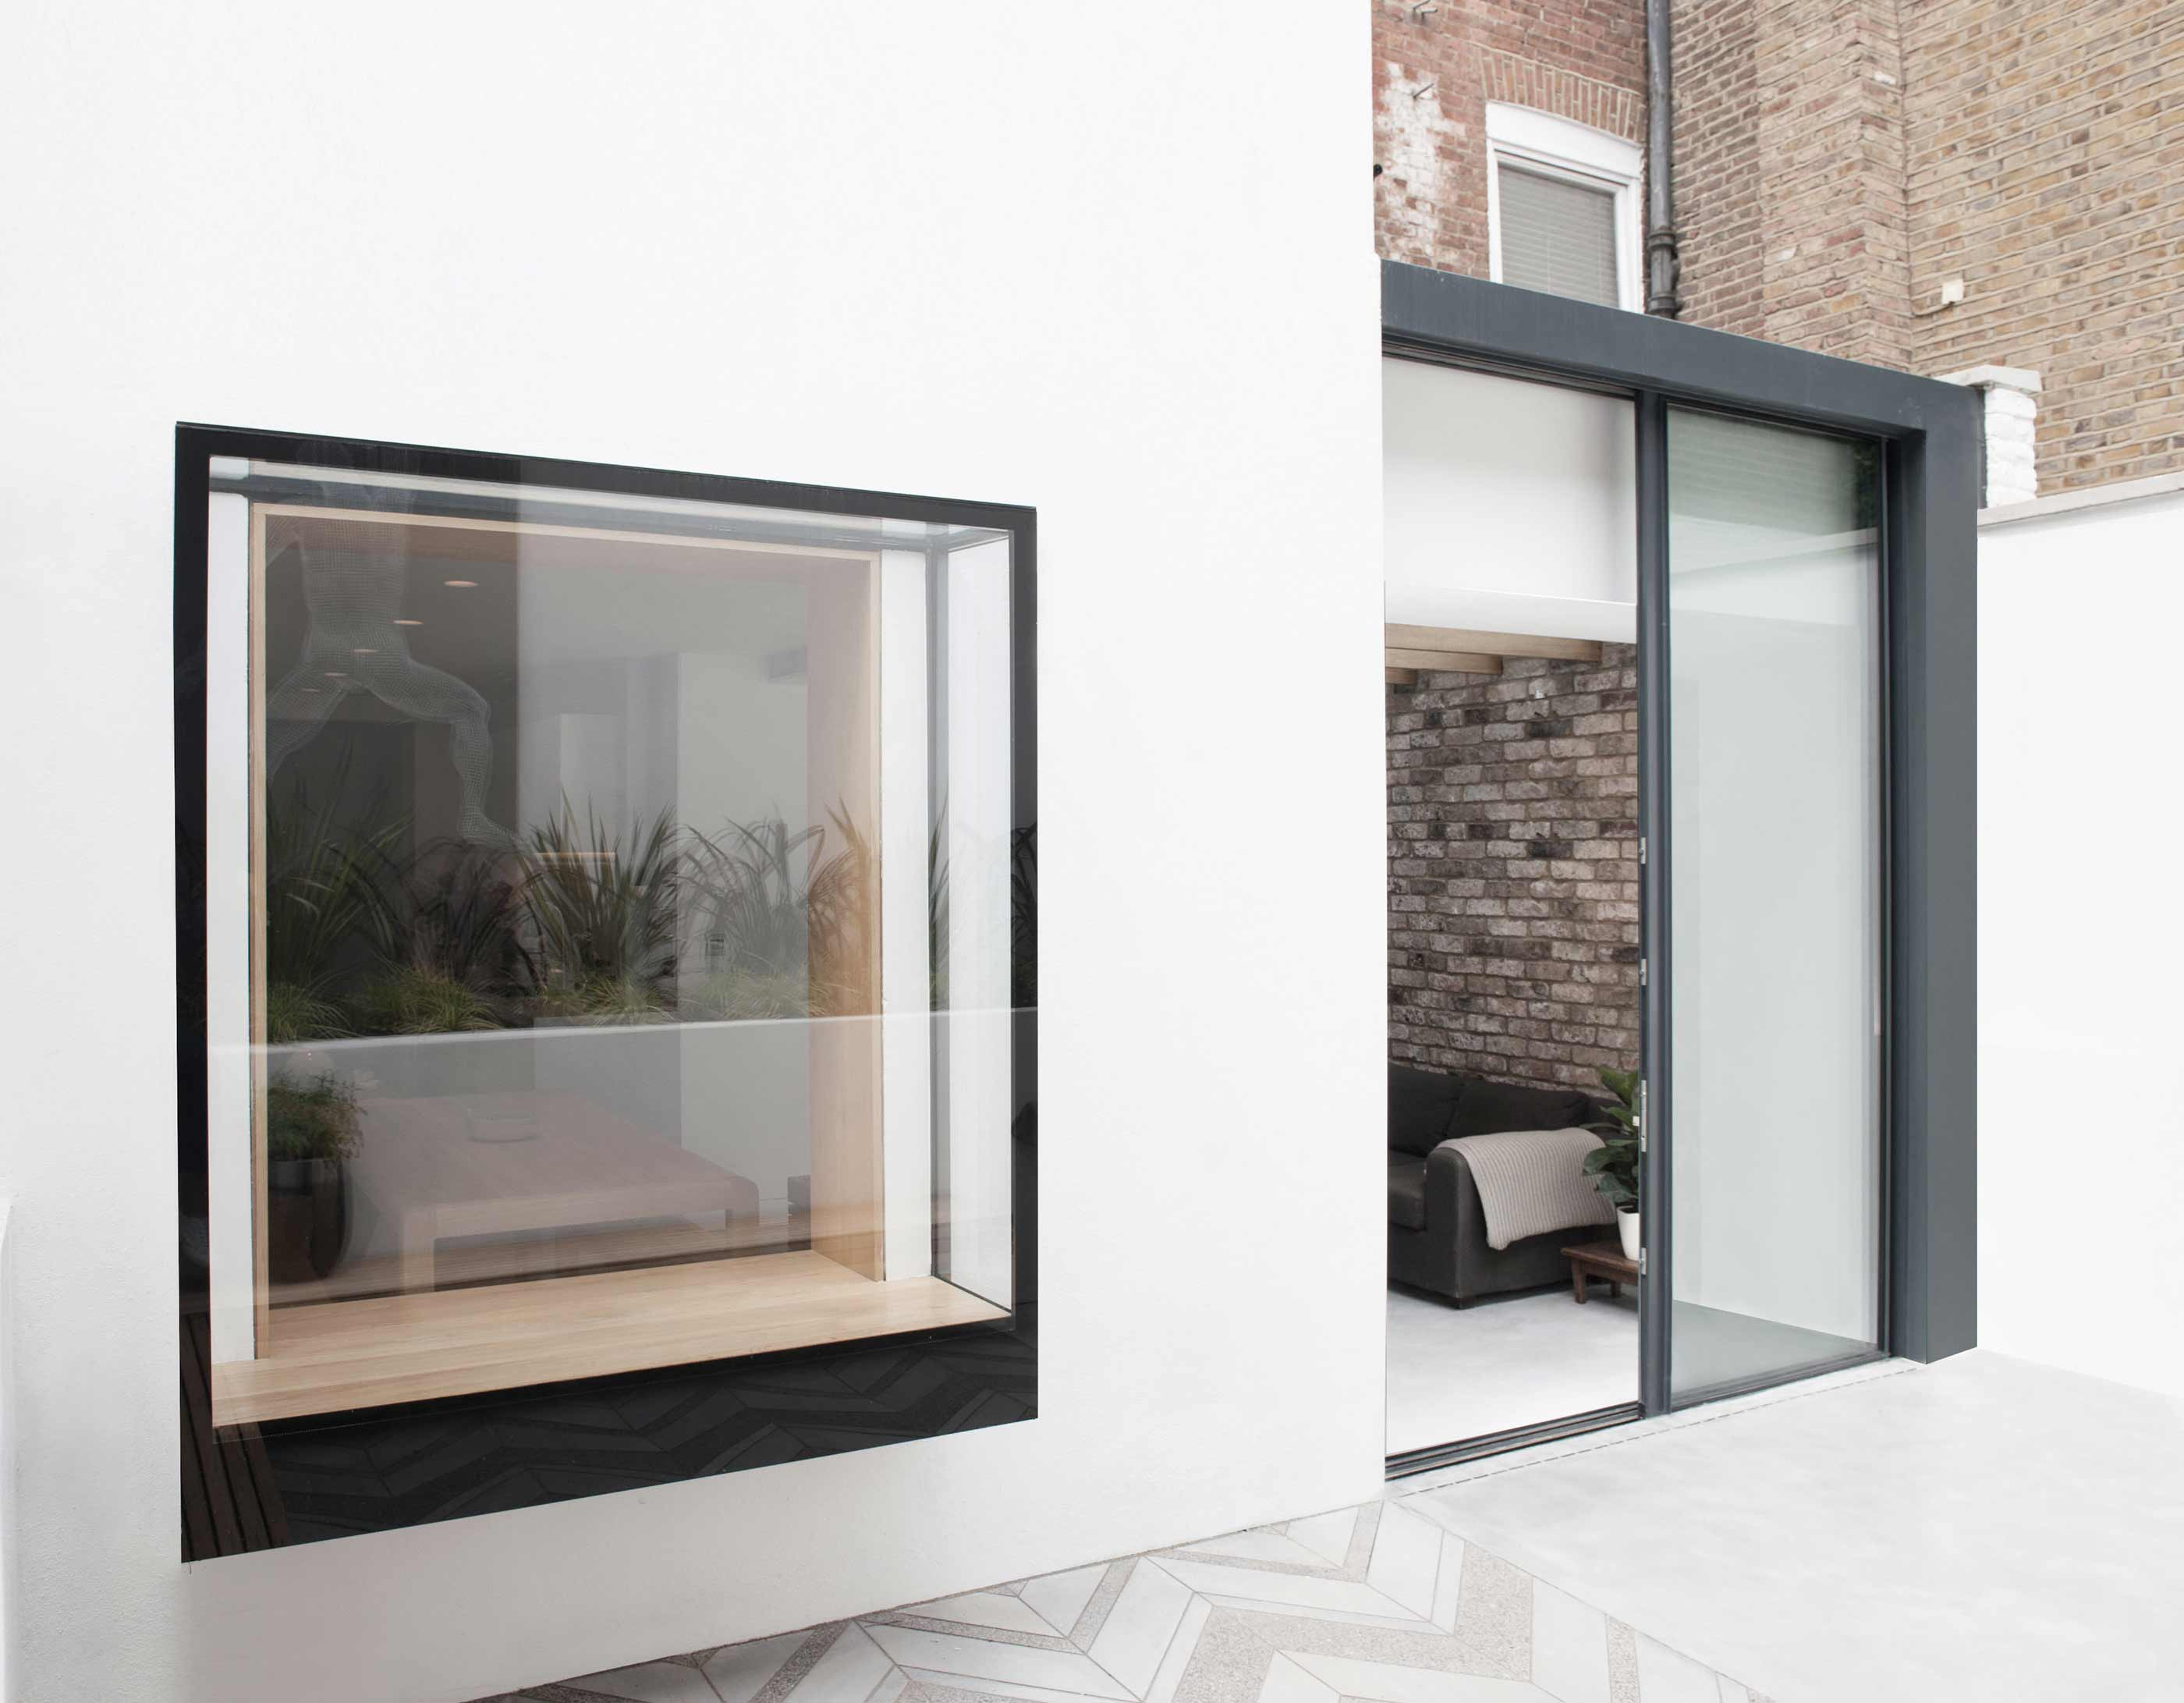 Notting Hill - Westbourne Park Road garden flat extension oriel window bespoke concrete paving garden design sliding doors